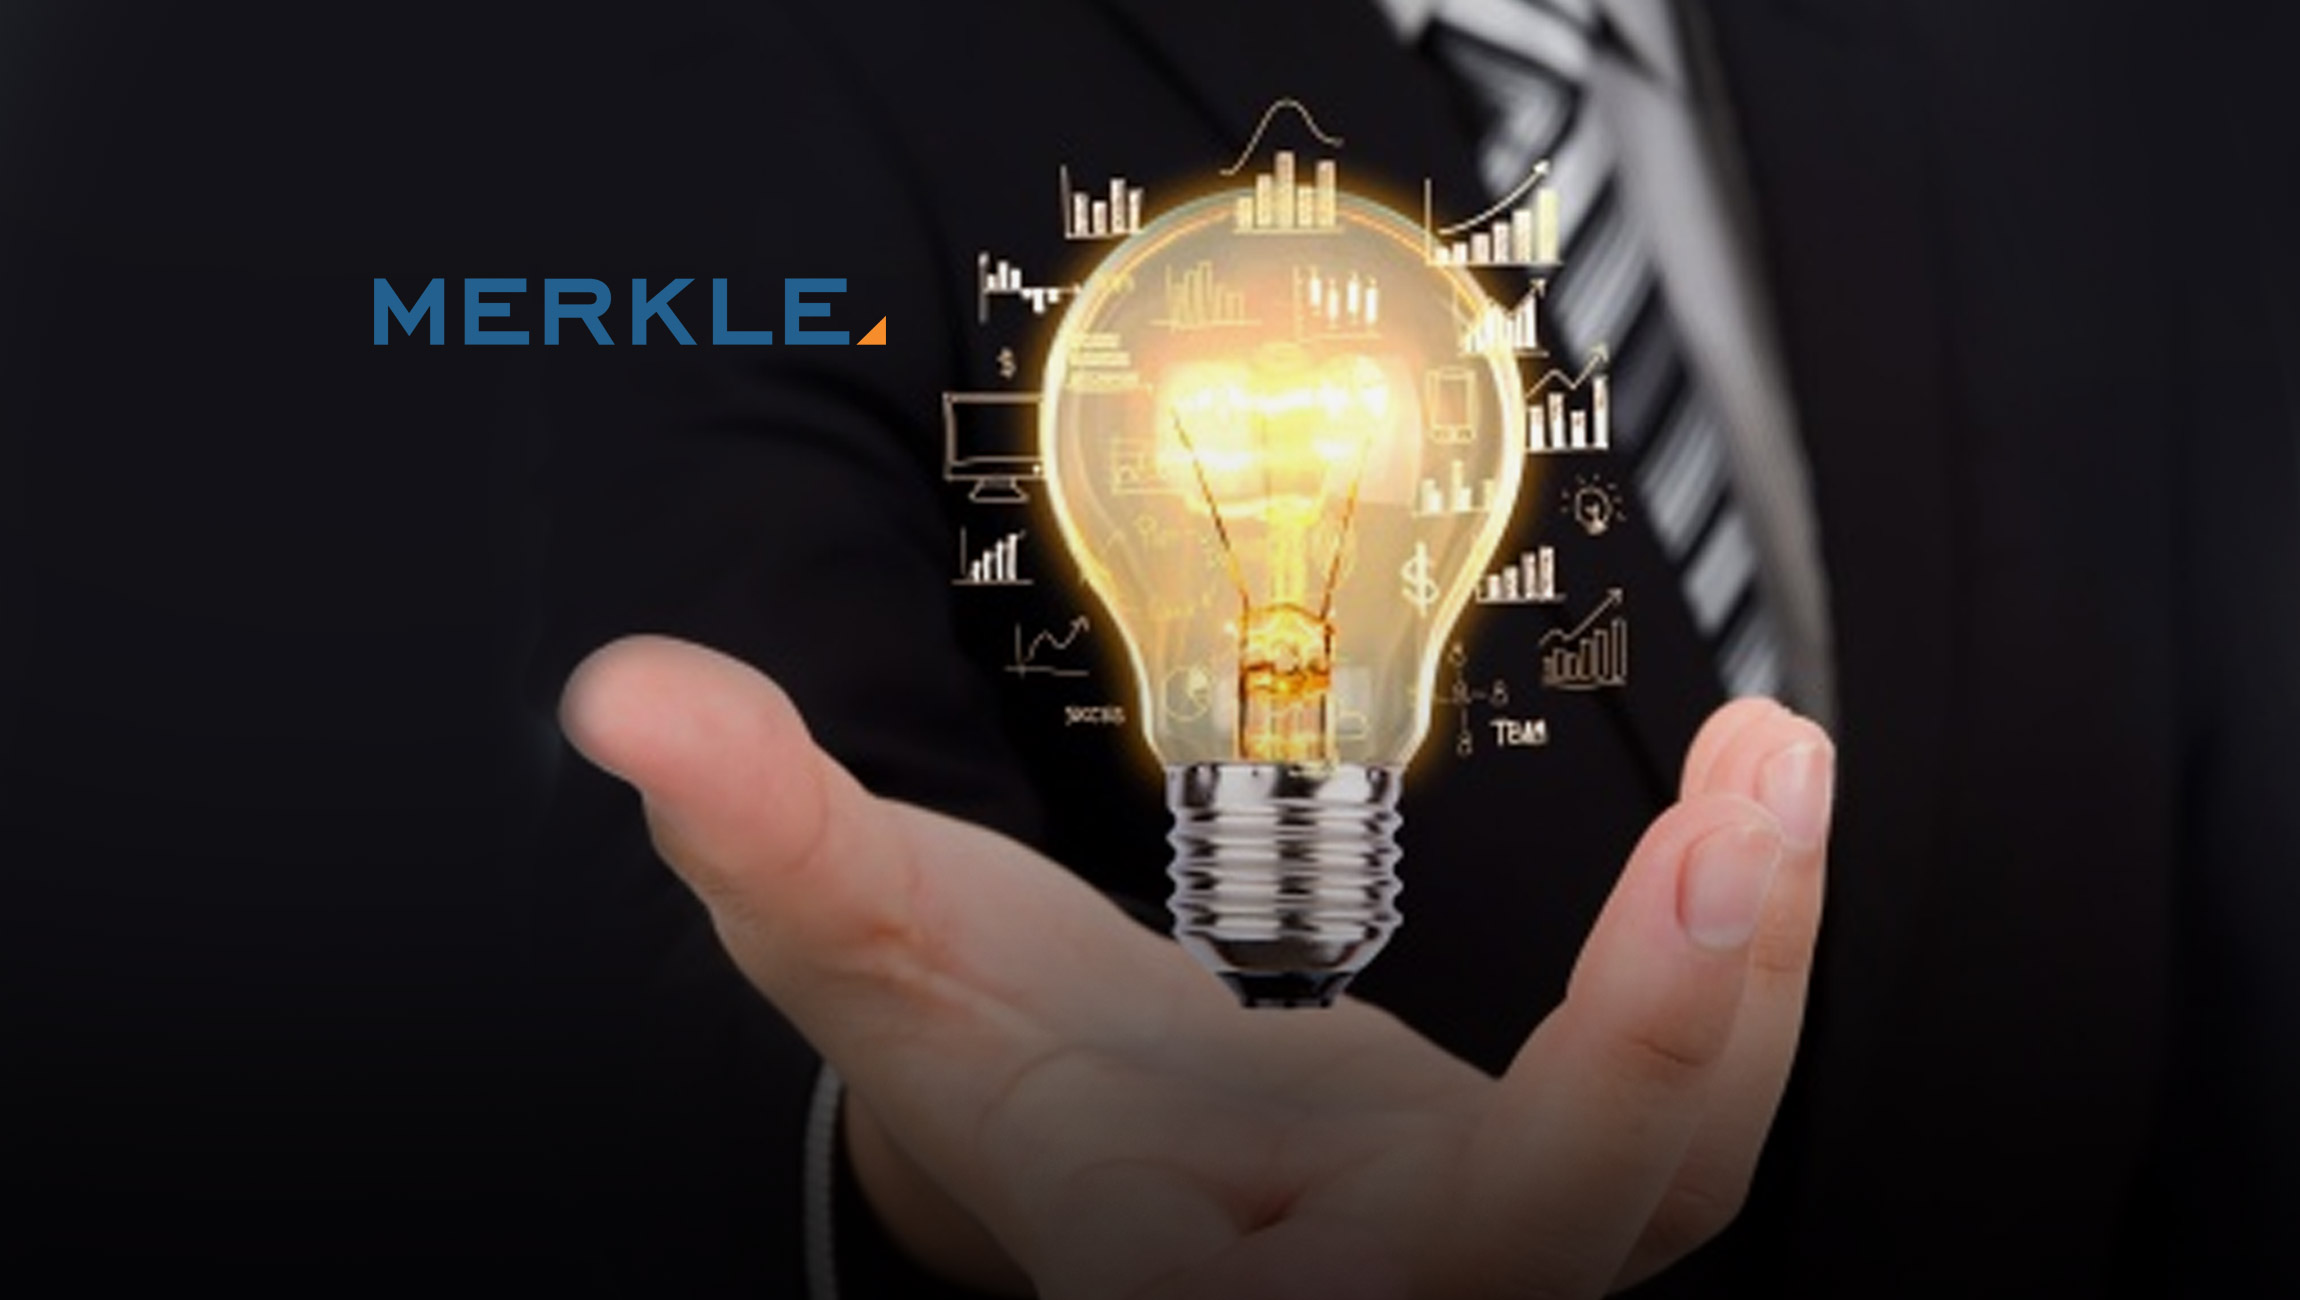 Merkle Innovated and Expanded During a Year of Change